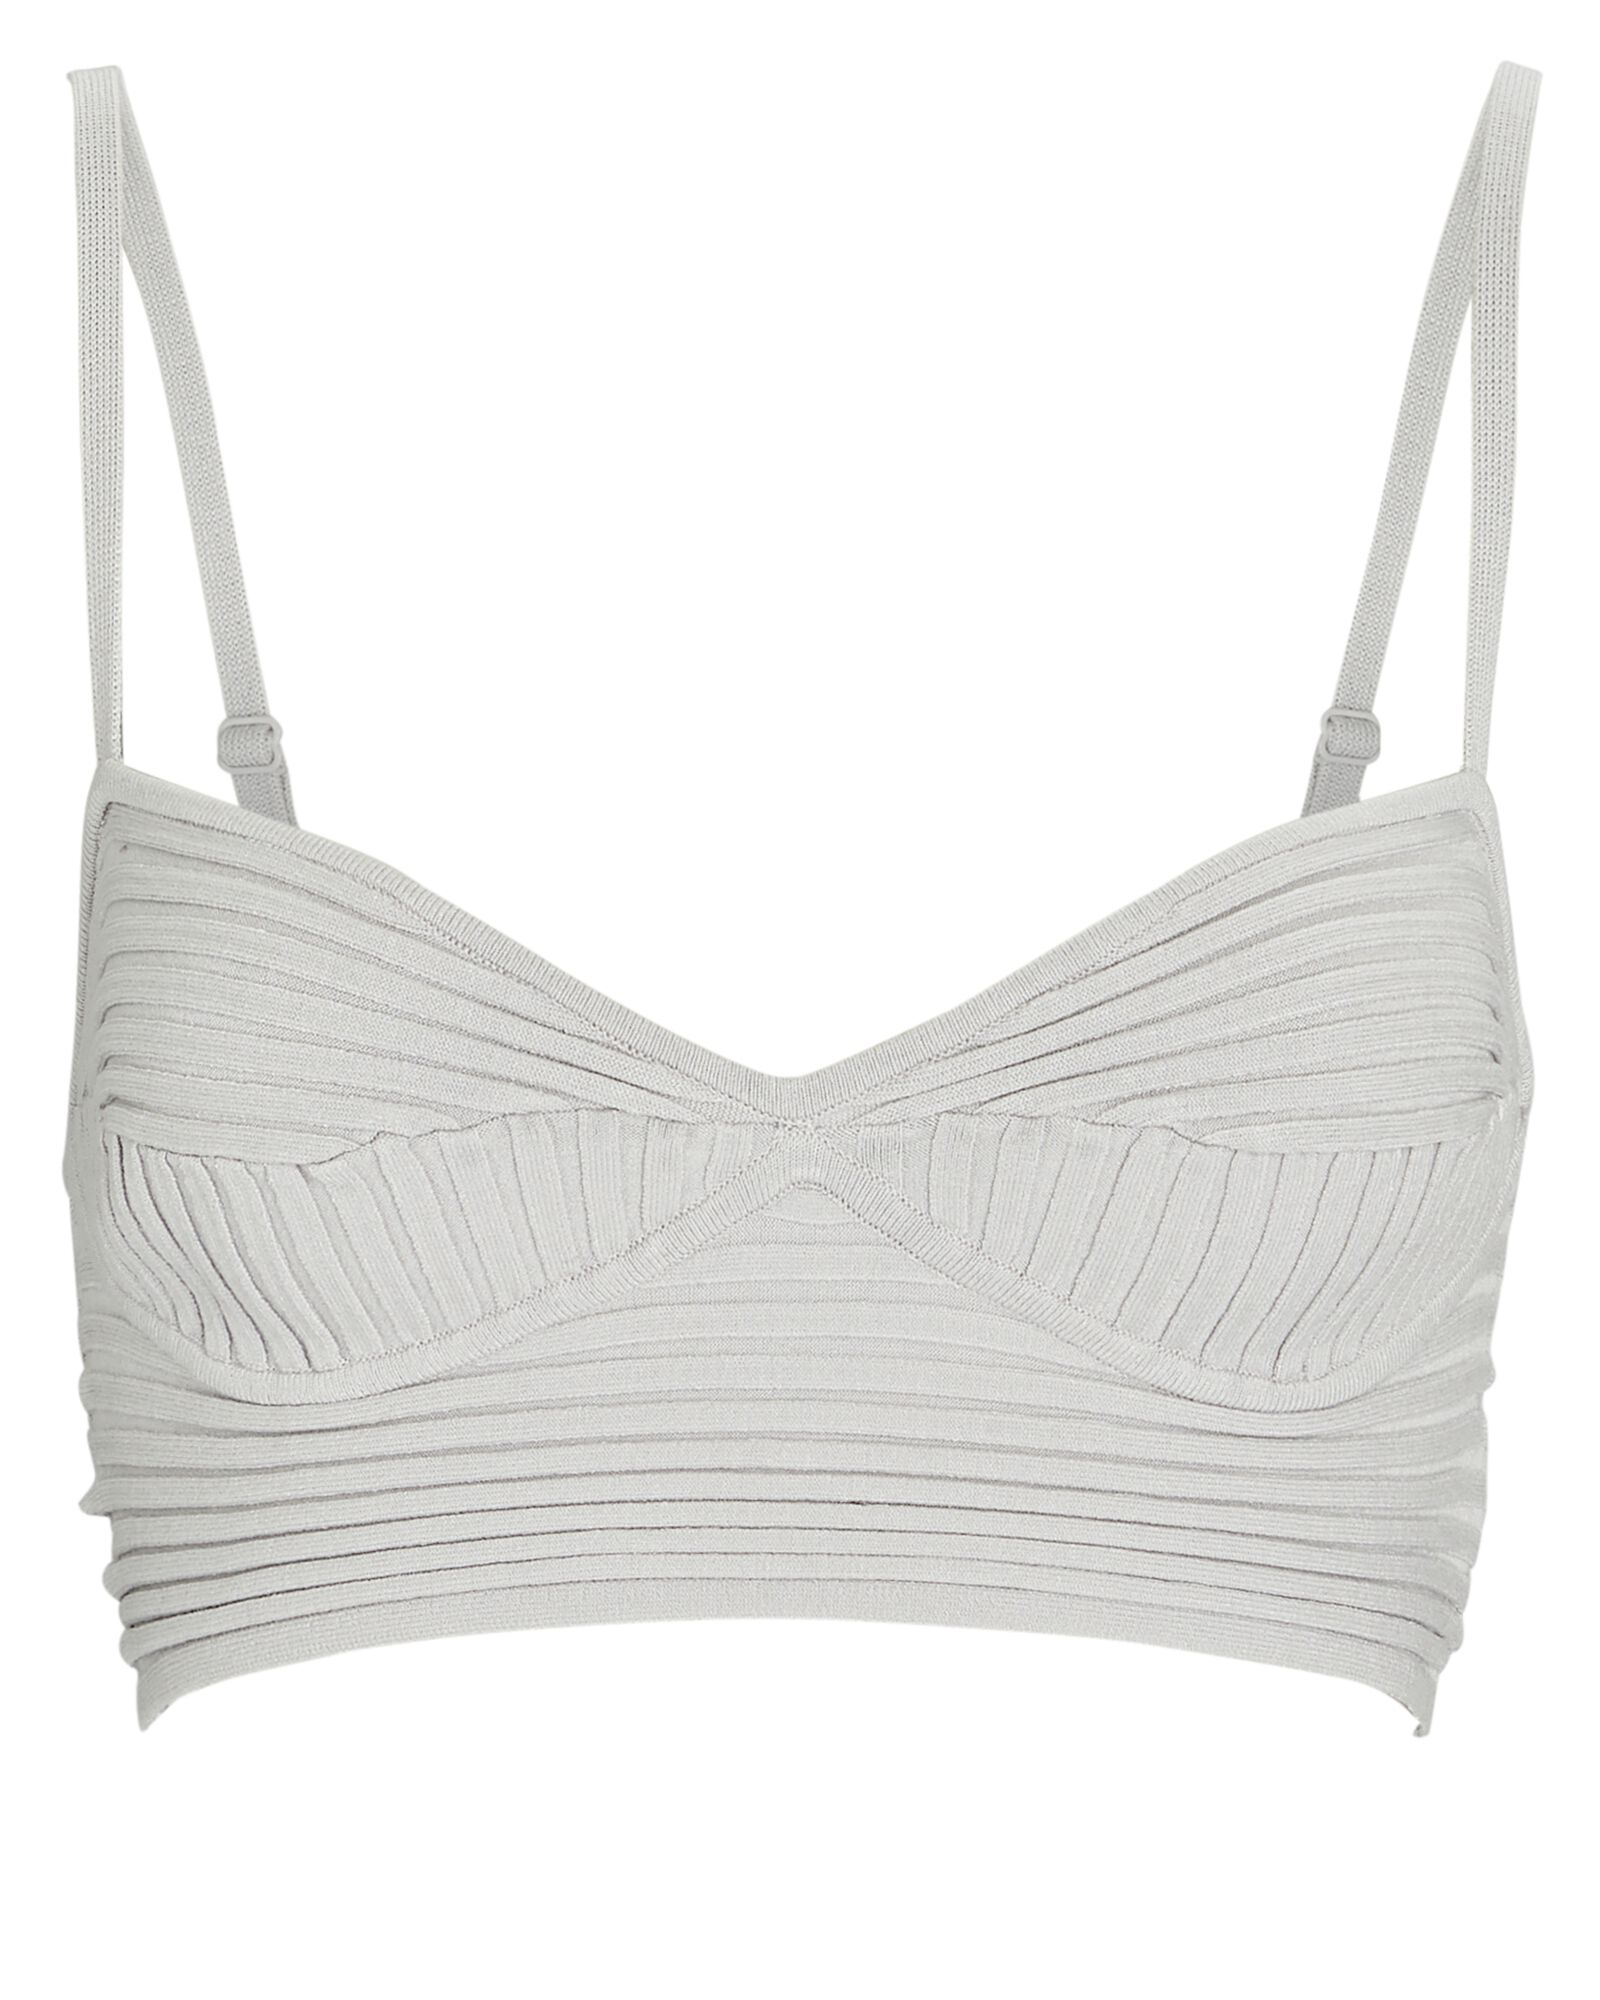 Linden Rib Knit Bralette, LIGHT GREY, hi-res